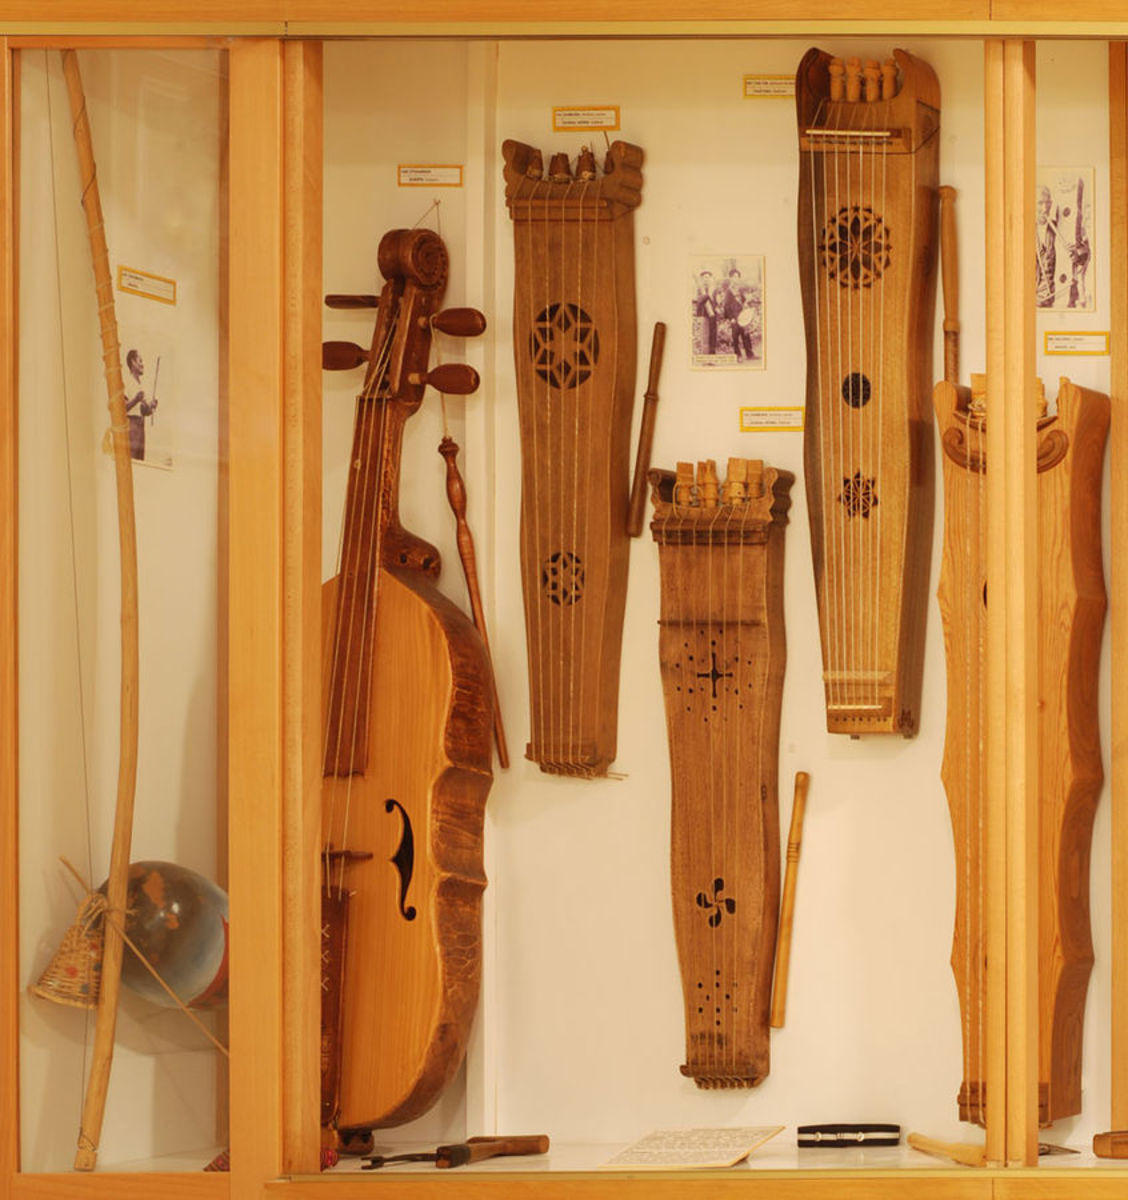 Stringed percussion instruments